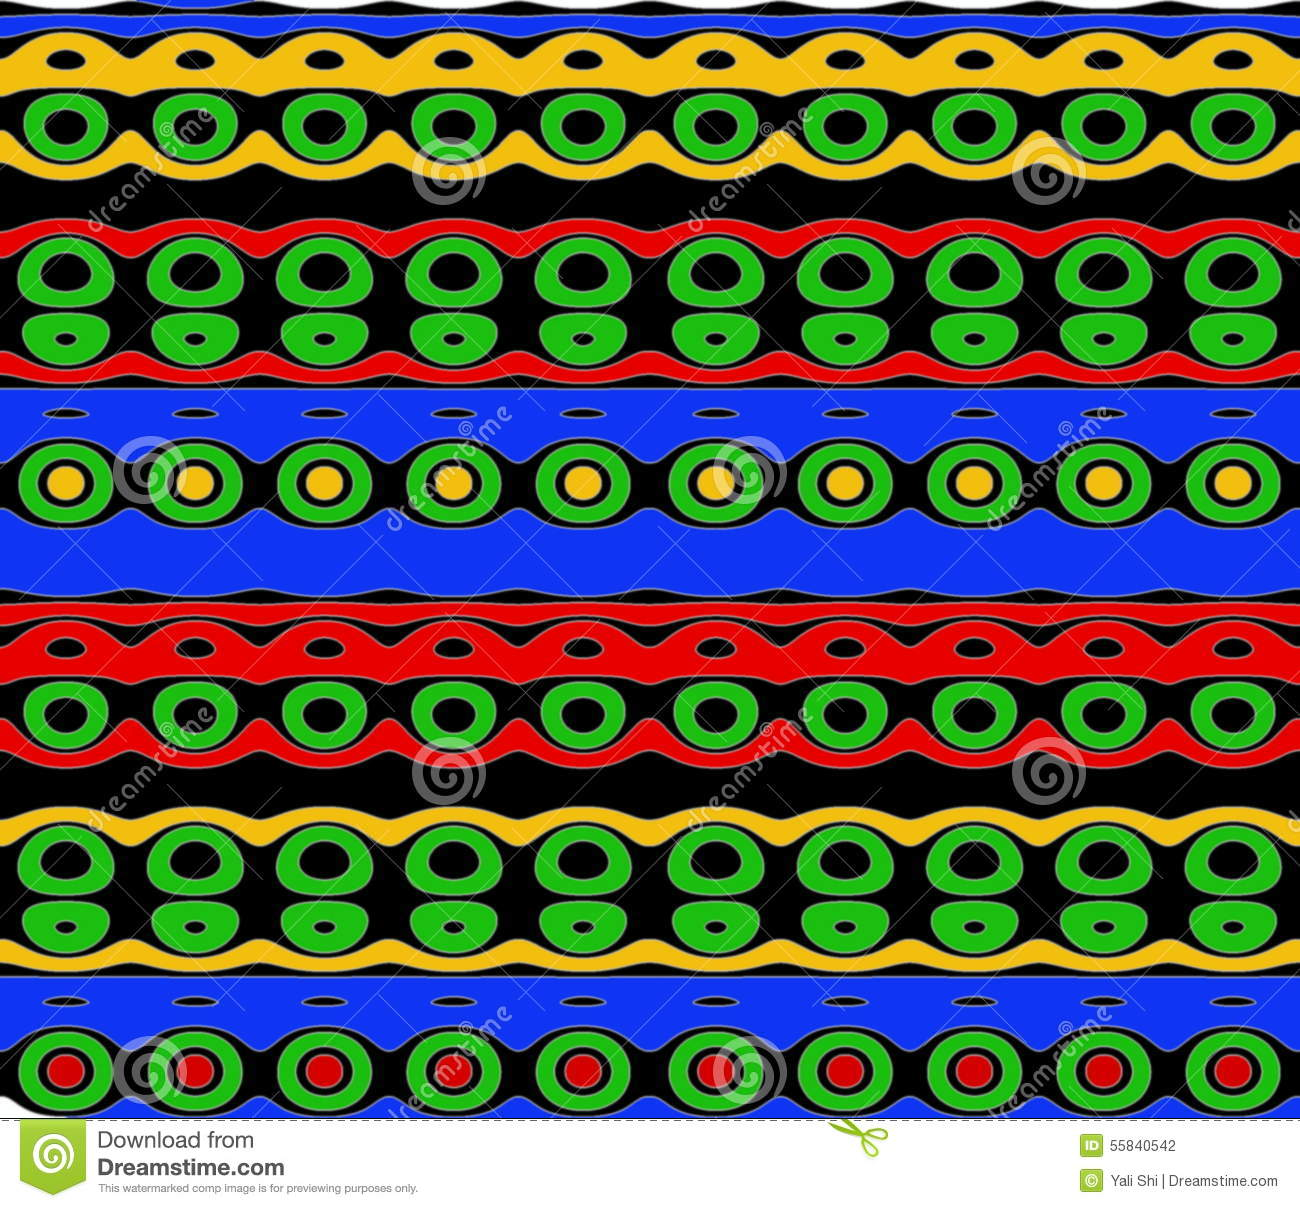 Native Pattern in Bright Colors